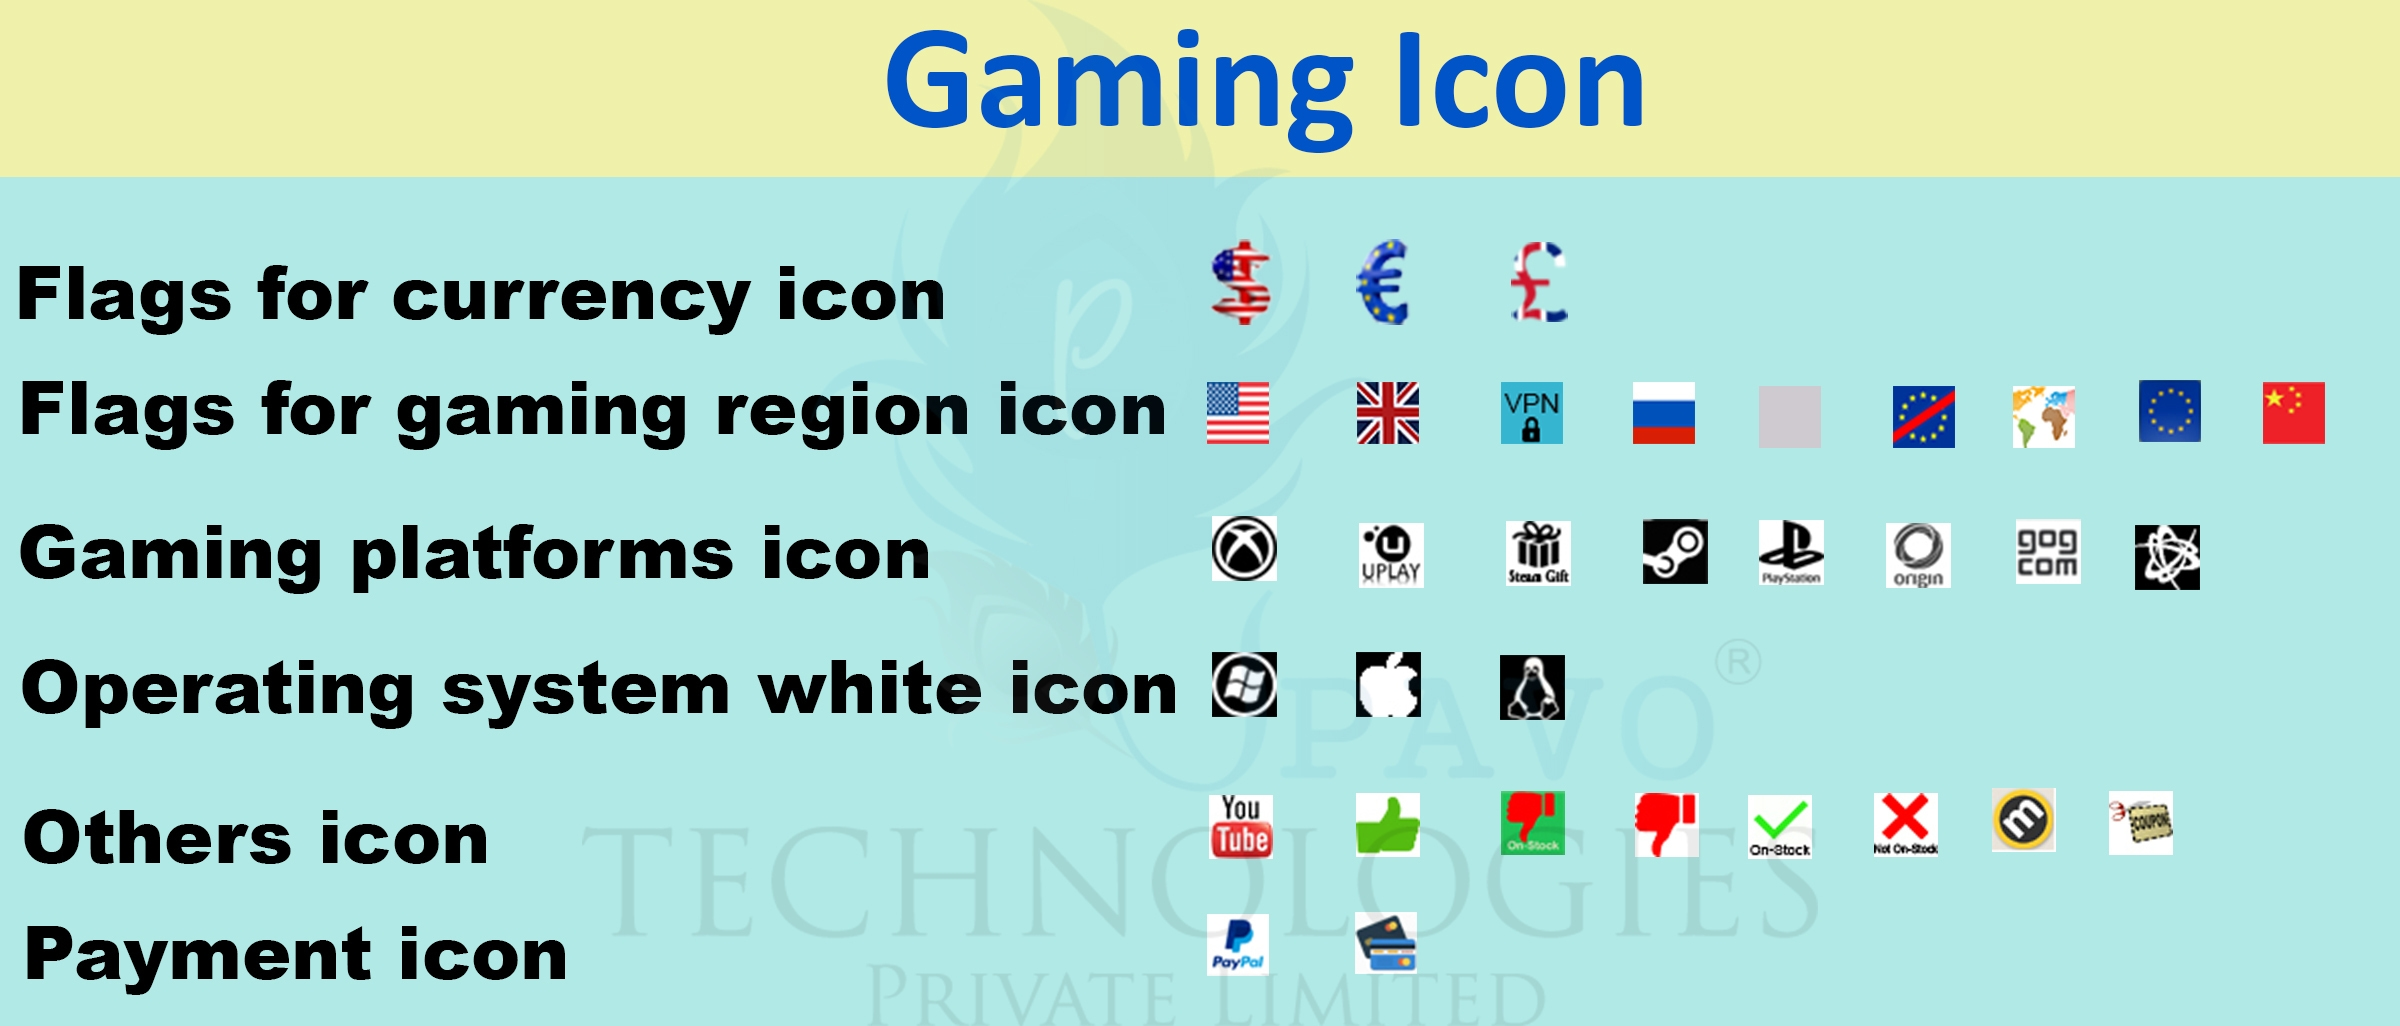 Simple Icon Creation for Gaming Shop - Successfully Delivered Projects On-Time and On-Budget.